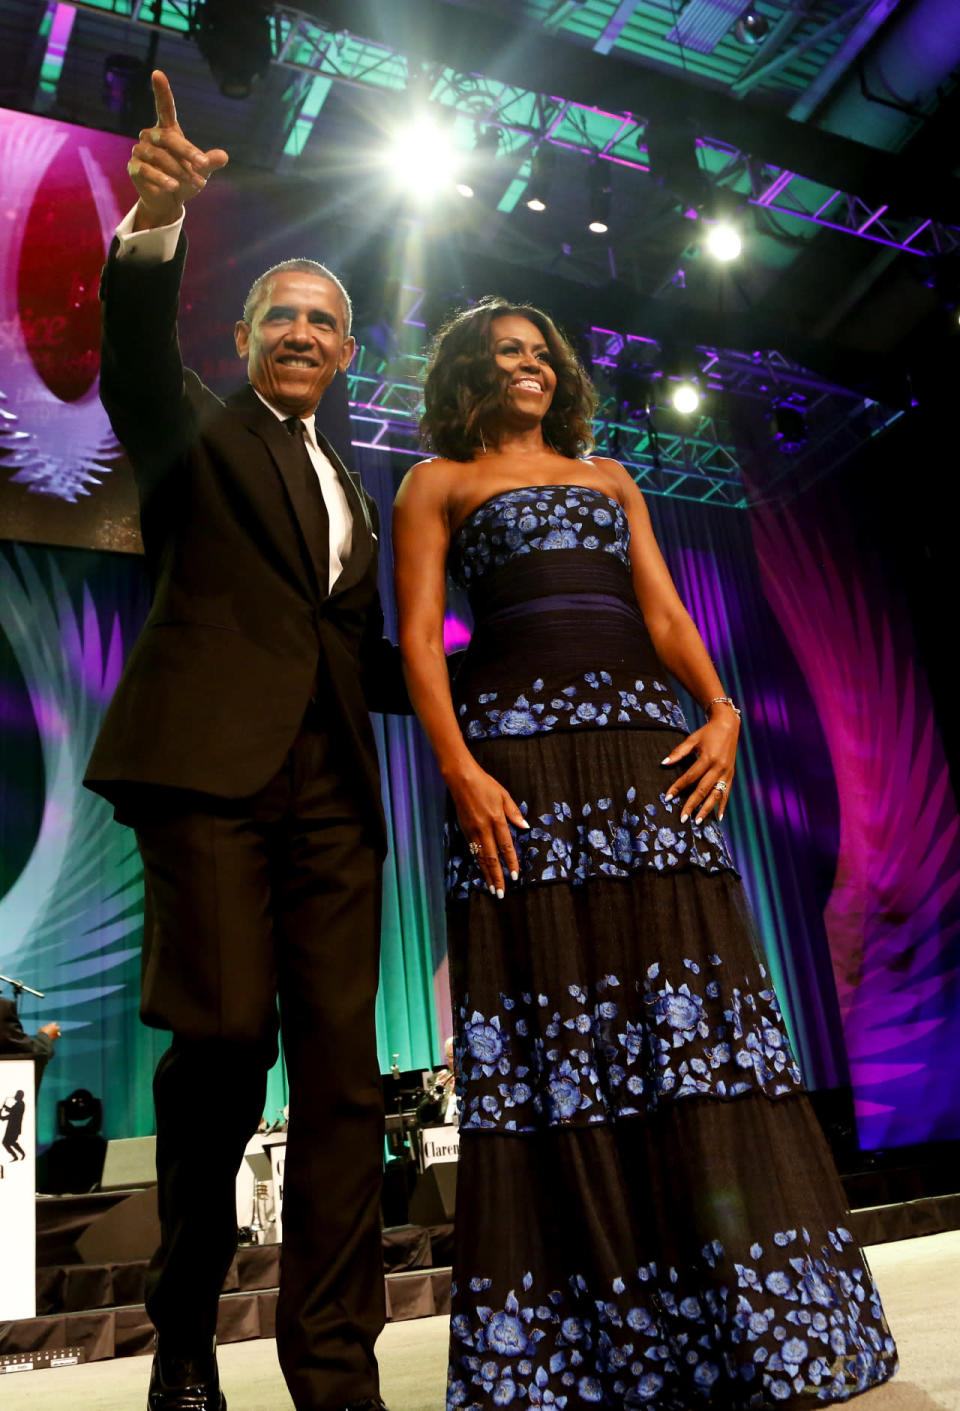 <p>Obama paid tribute to female leaders in civil rights and his wife made a statement in a black dress with blue flowers from Tadashi Shoji. <br></p>